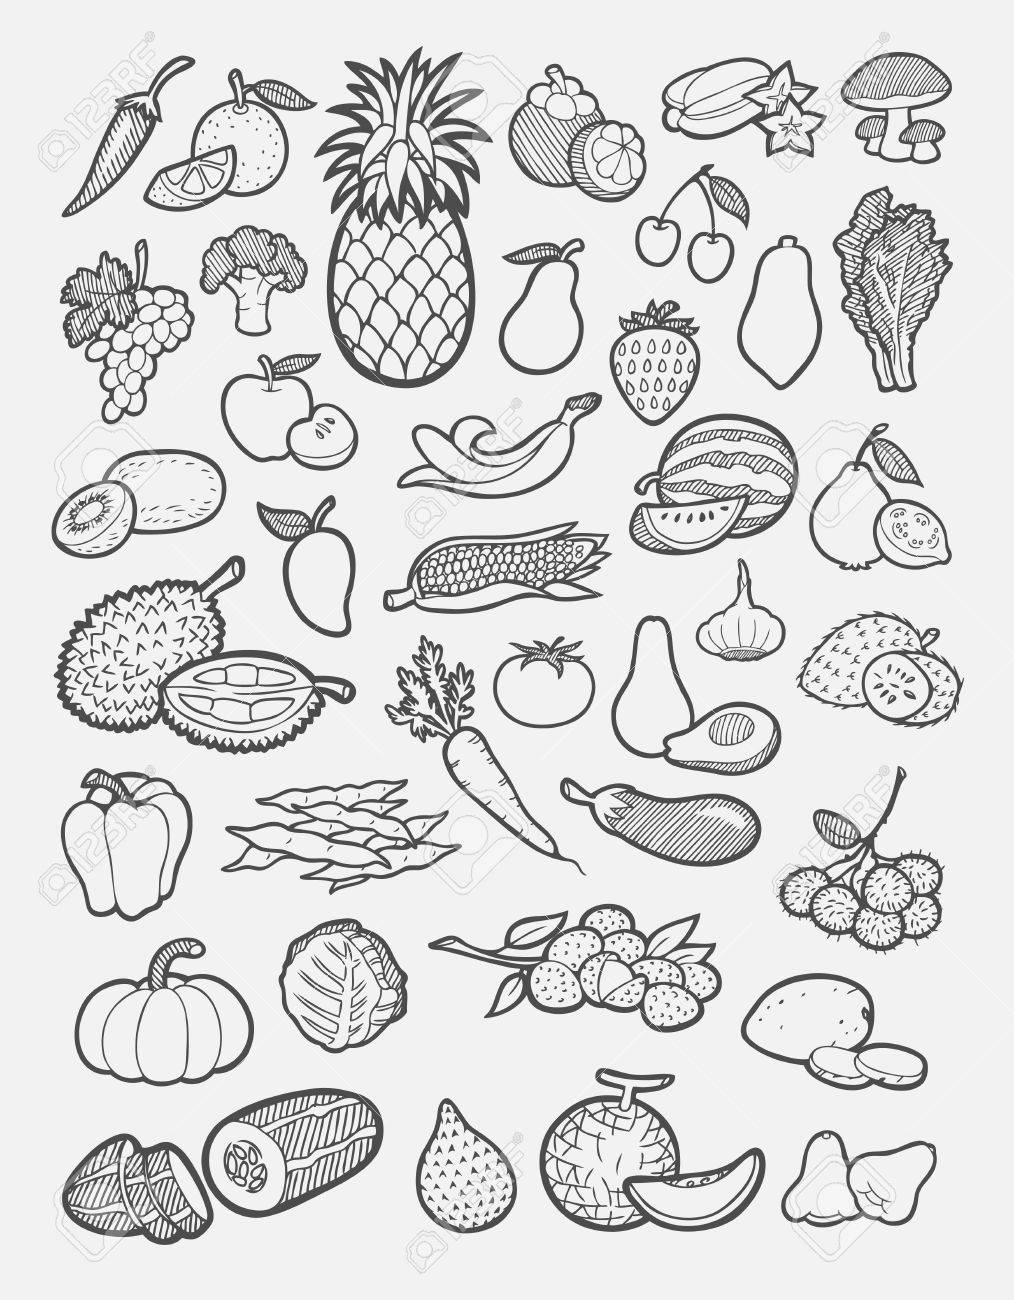 Fruit Sketch Drawing Set of Fruit And Vegetable